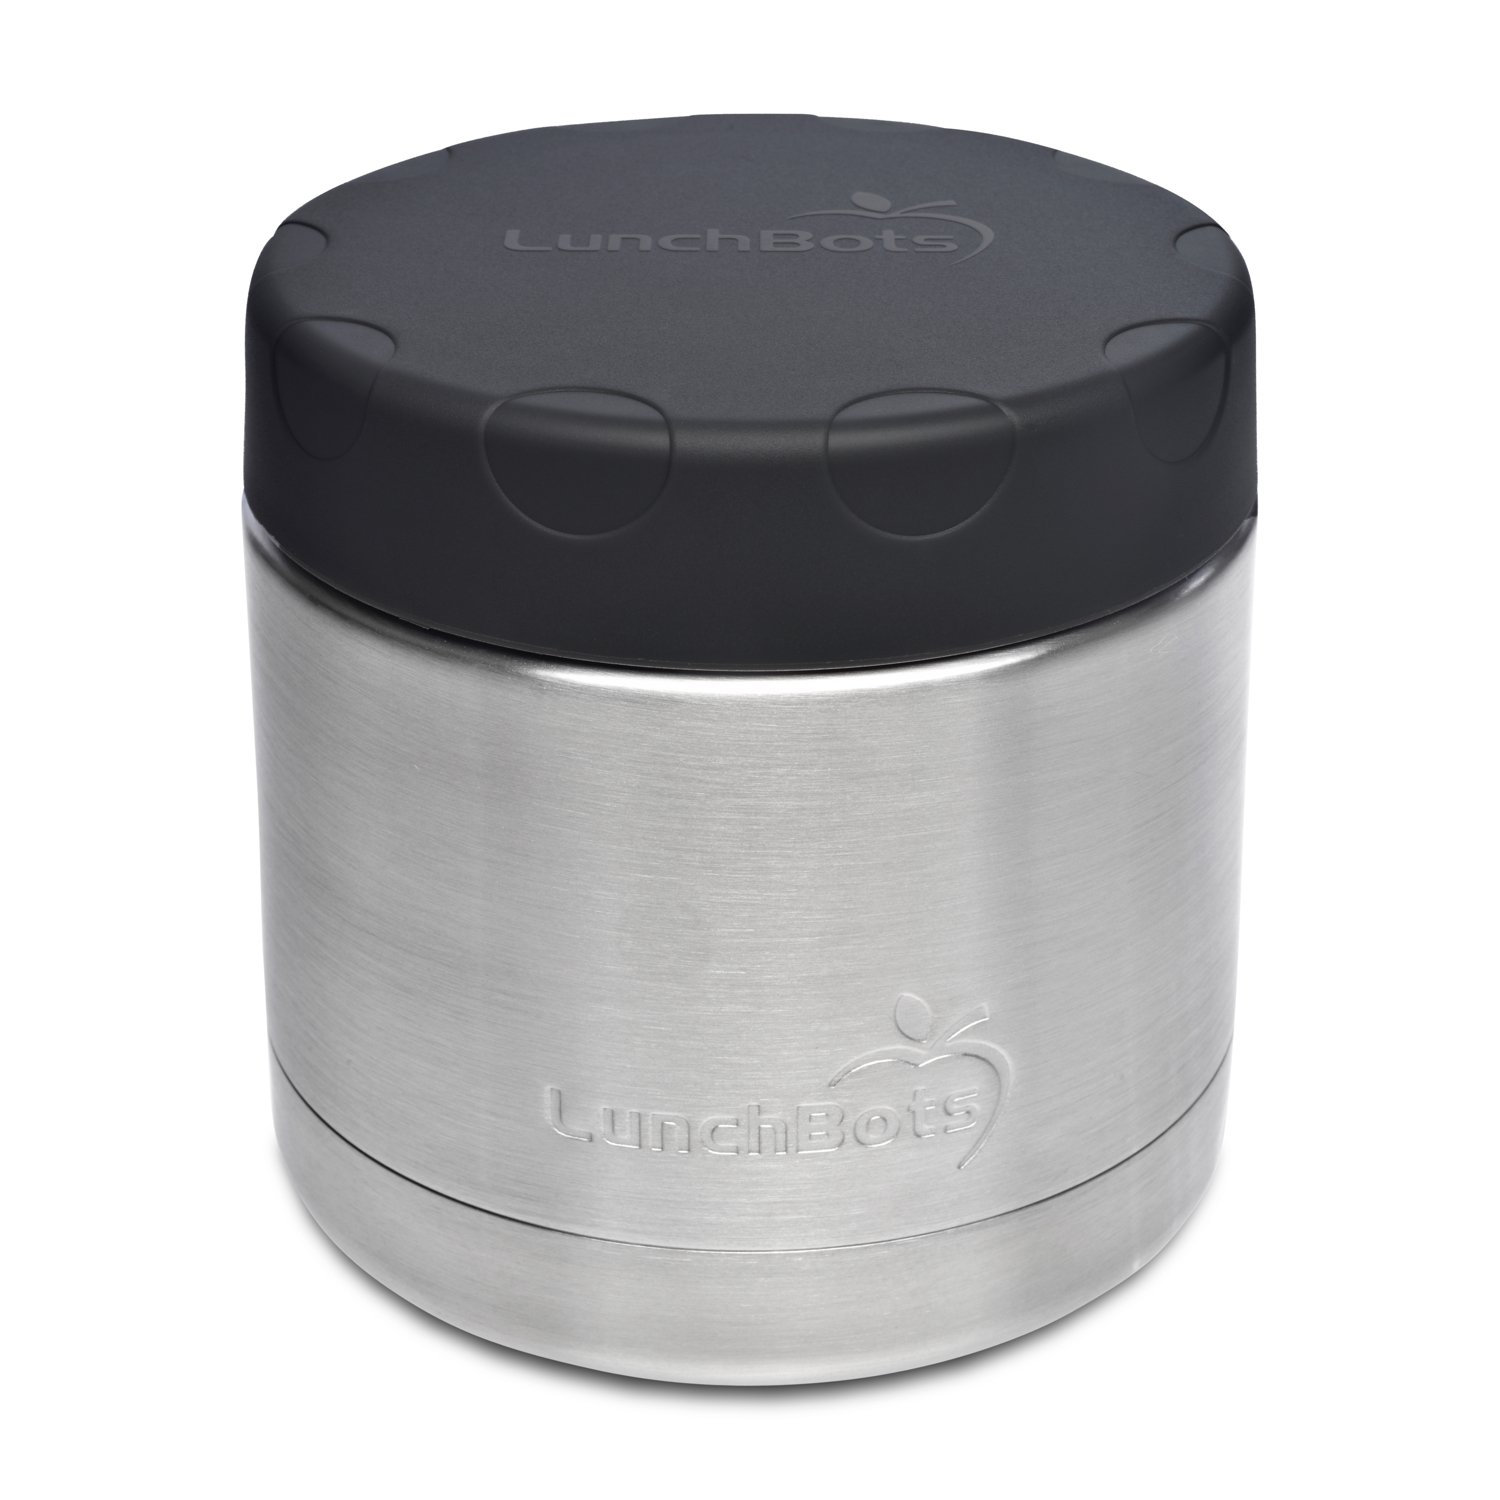 LunchBots Wide Thermal 16 oz. All Stainless Steel Bowl - Insulated Food Container Stays Hot 6 Hours or Cold for 12 Hours - Leak Proof Soup Jar for Portable Convenience - Black